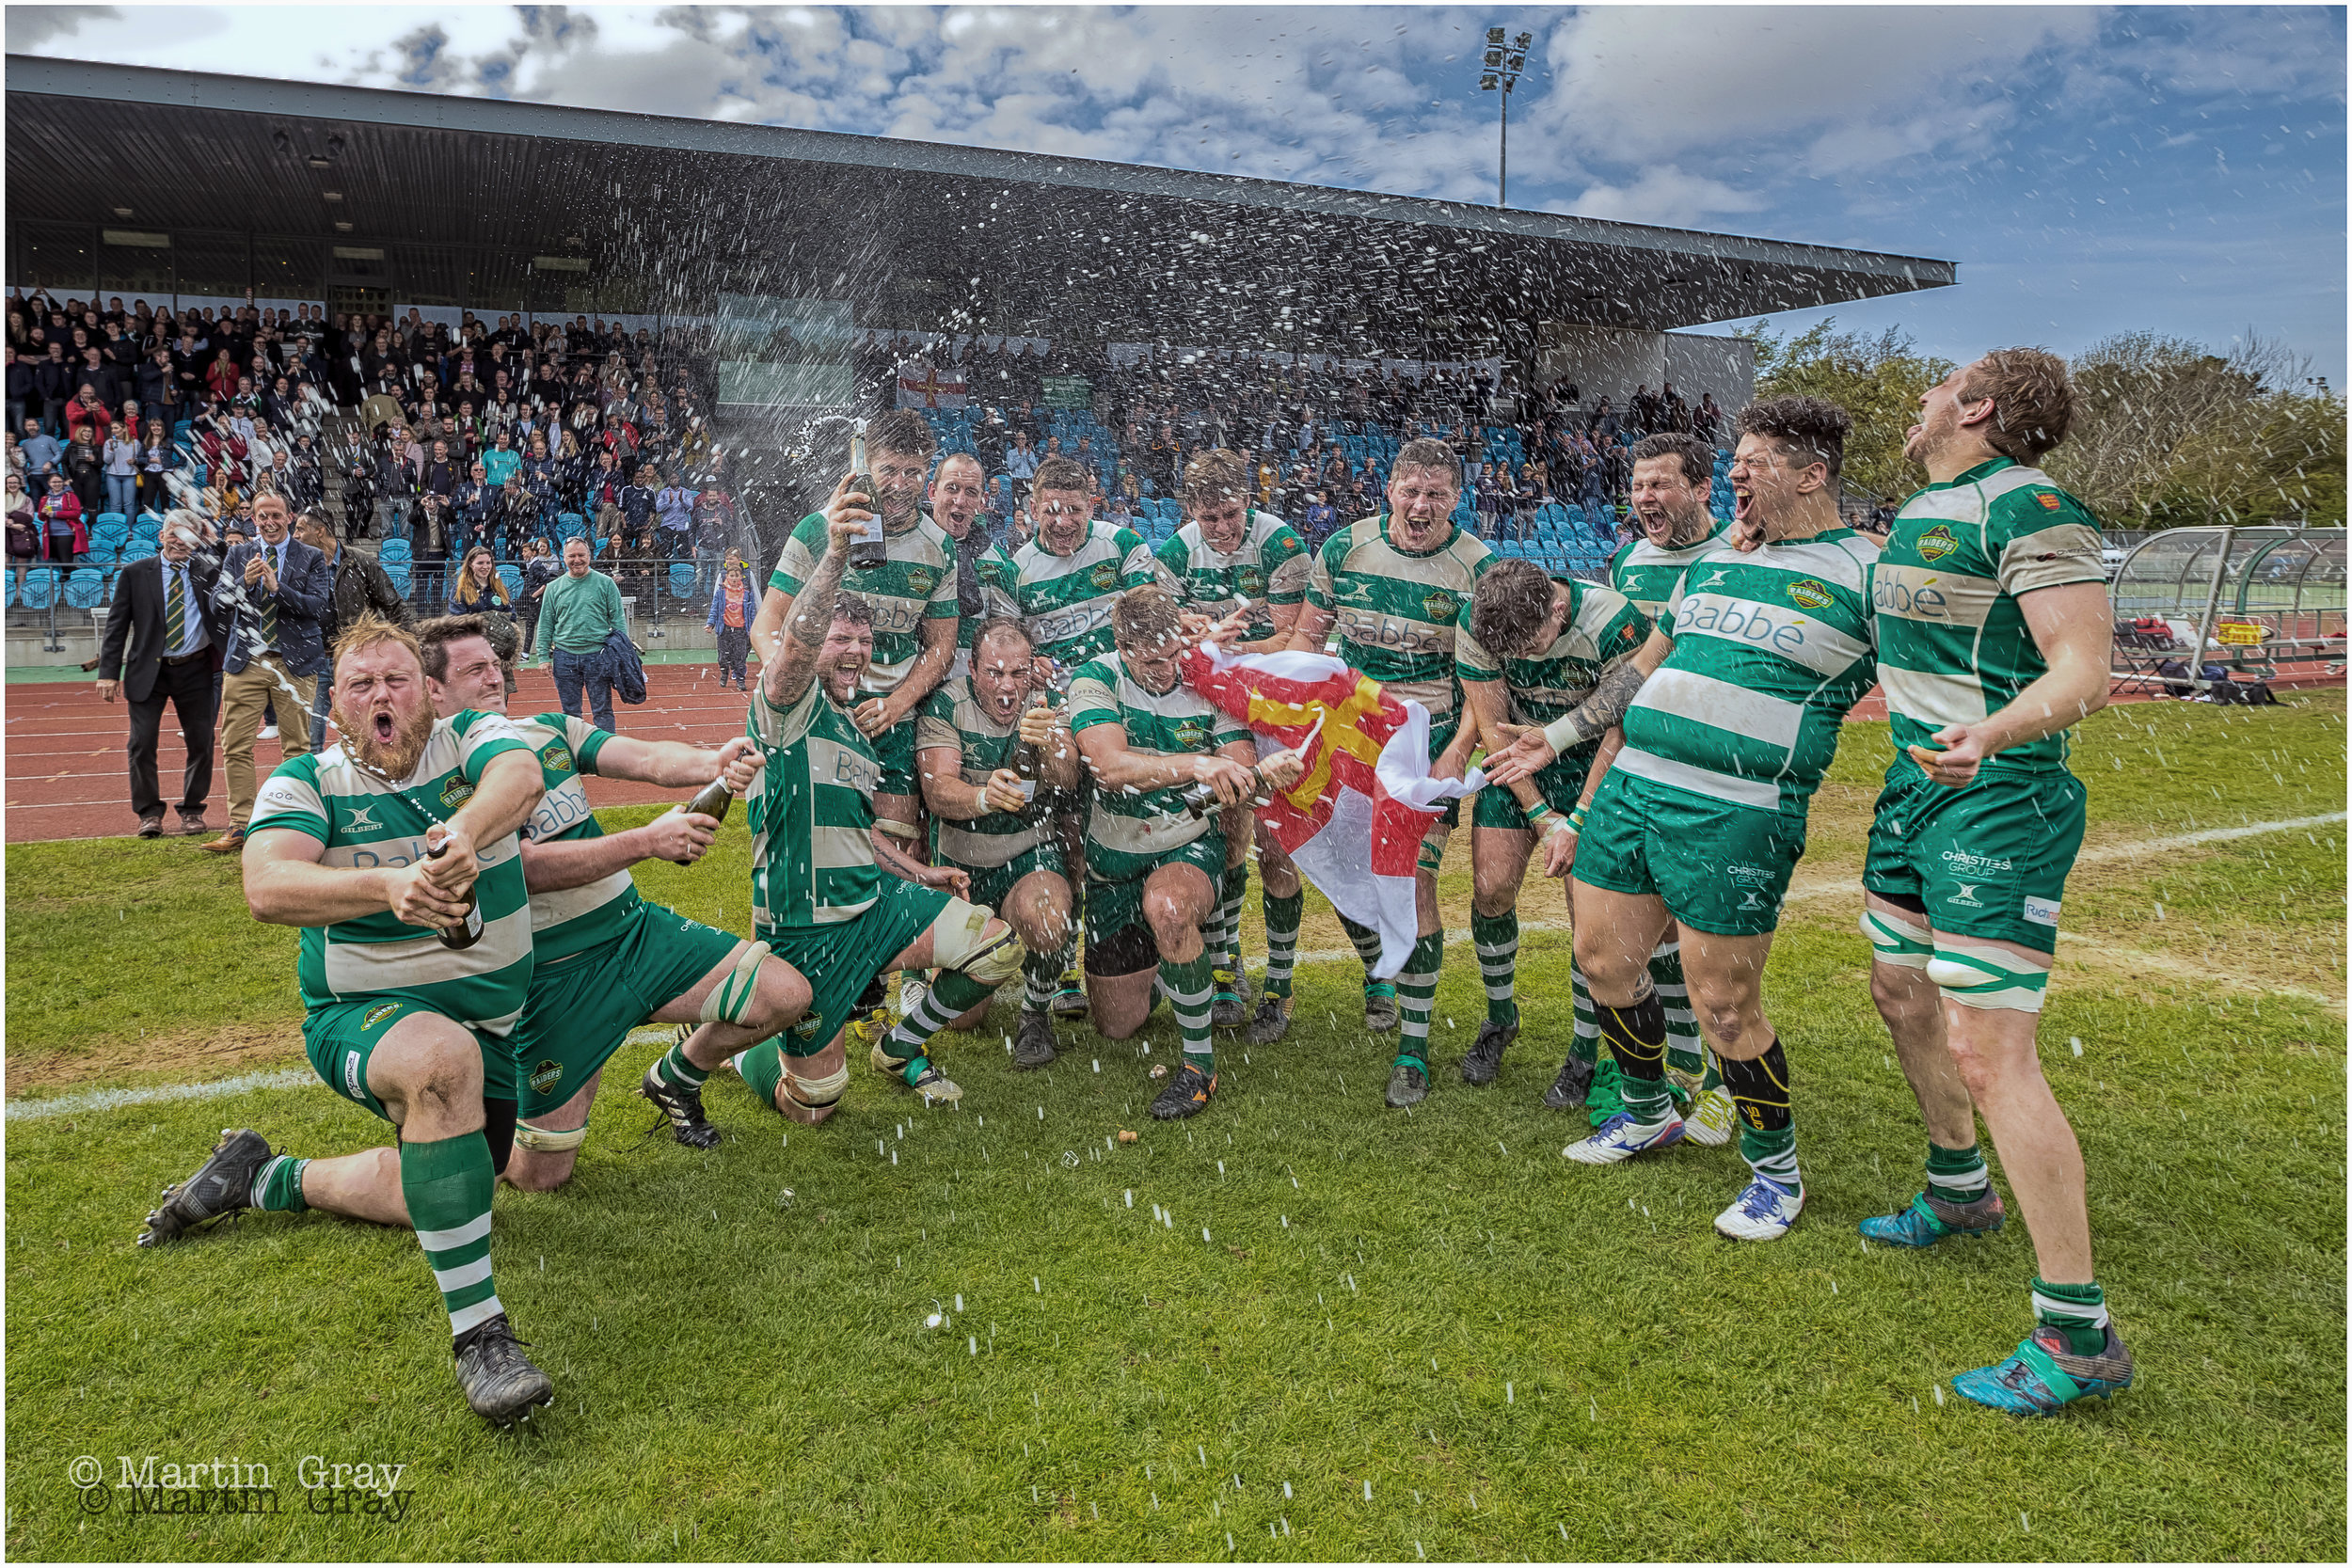 Guernsey Raider are promoted to National Two after winning 38-23 against Bournemouth RFC at Footes Lane... 28th April 2018